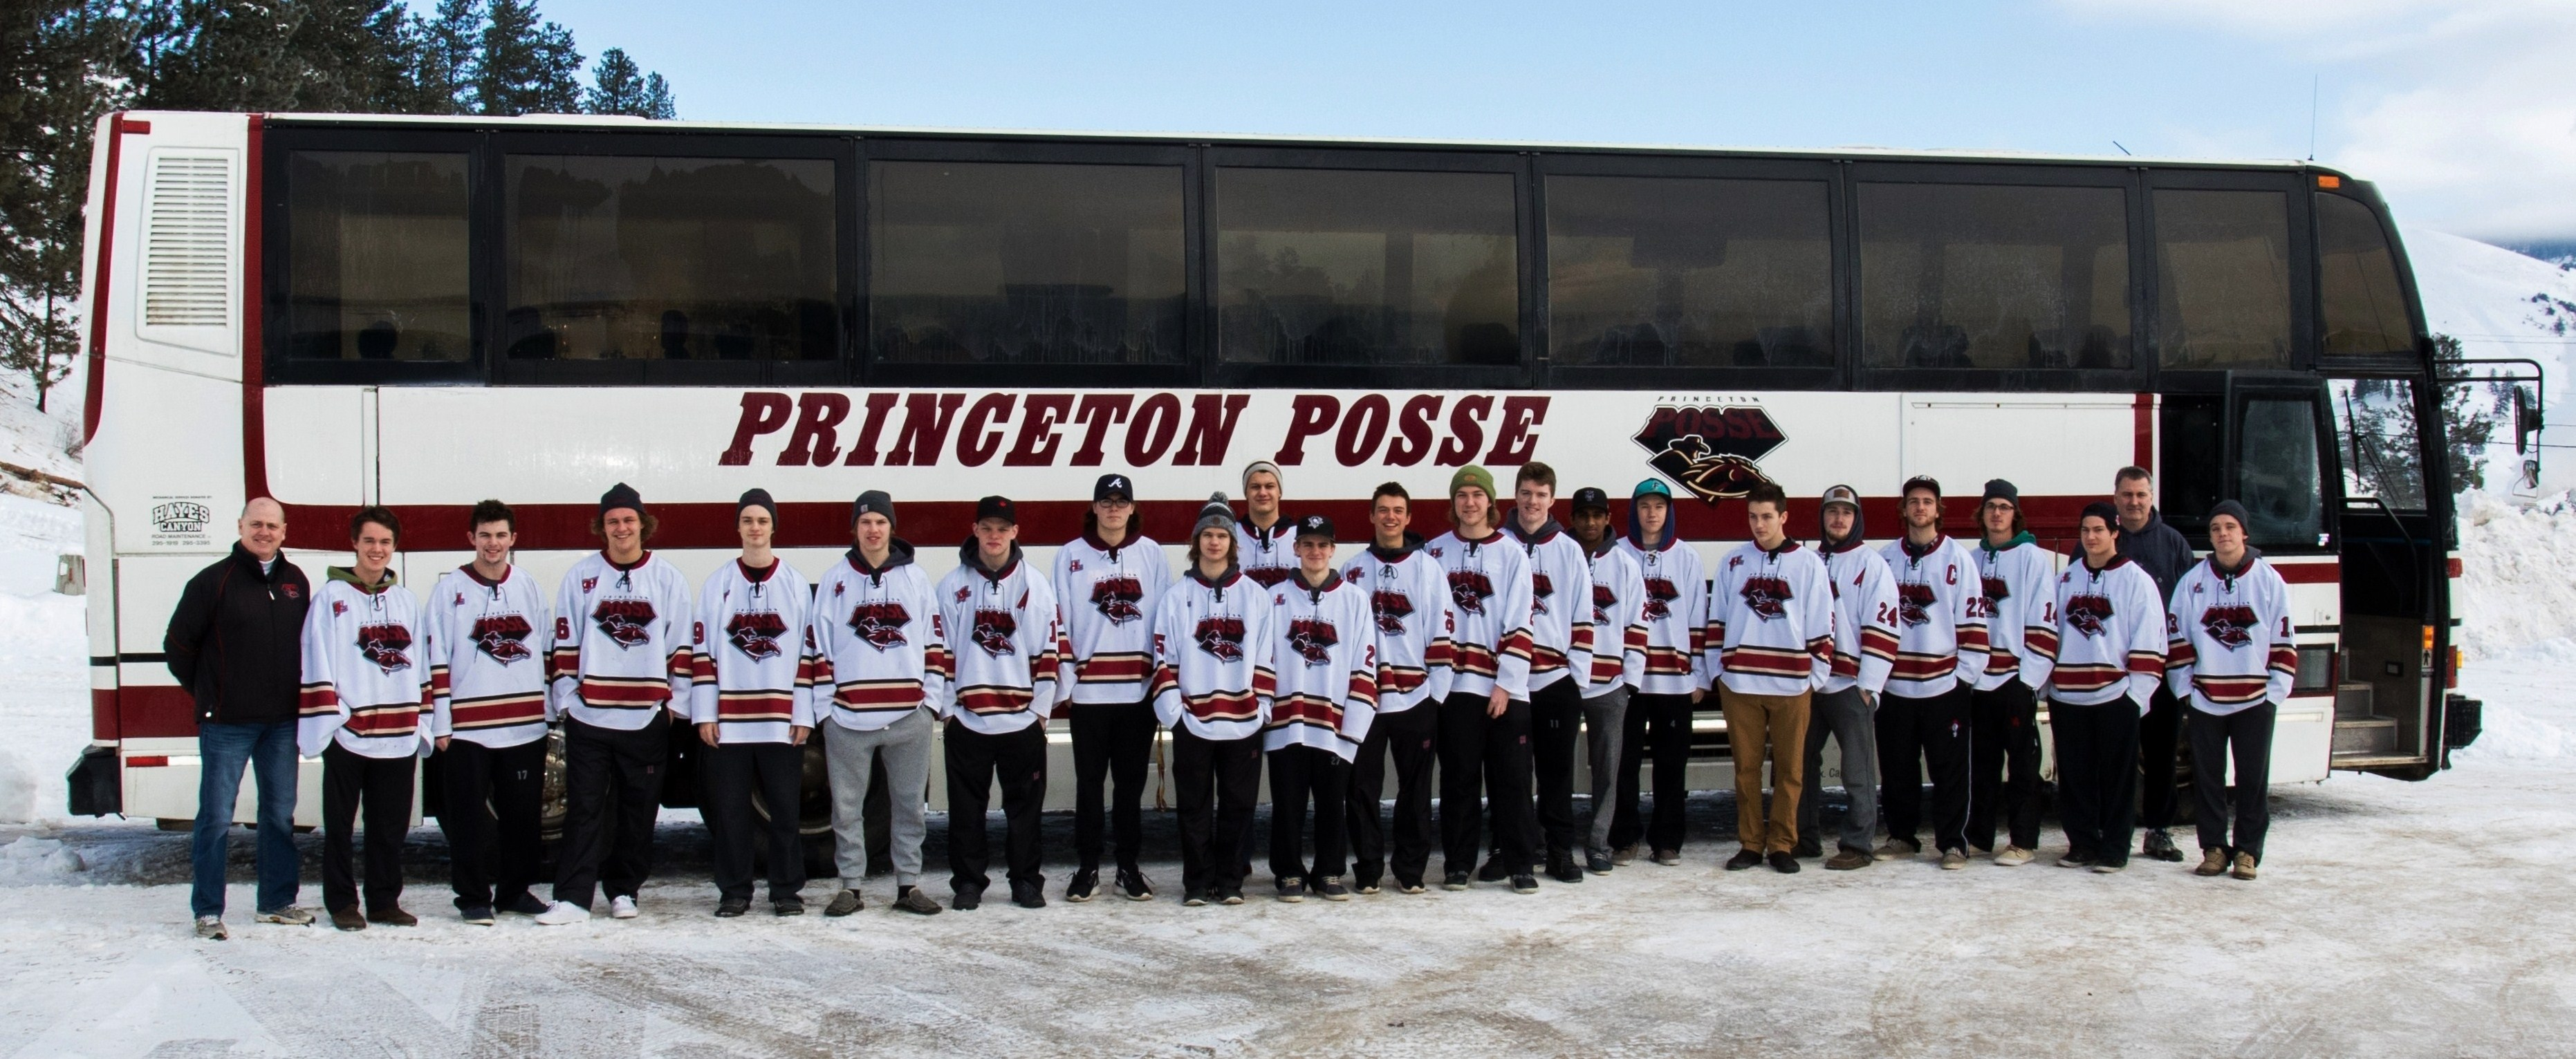 Princeton Posse Bus Team Photo, Courtesy of Princeton Posse